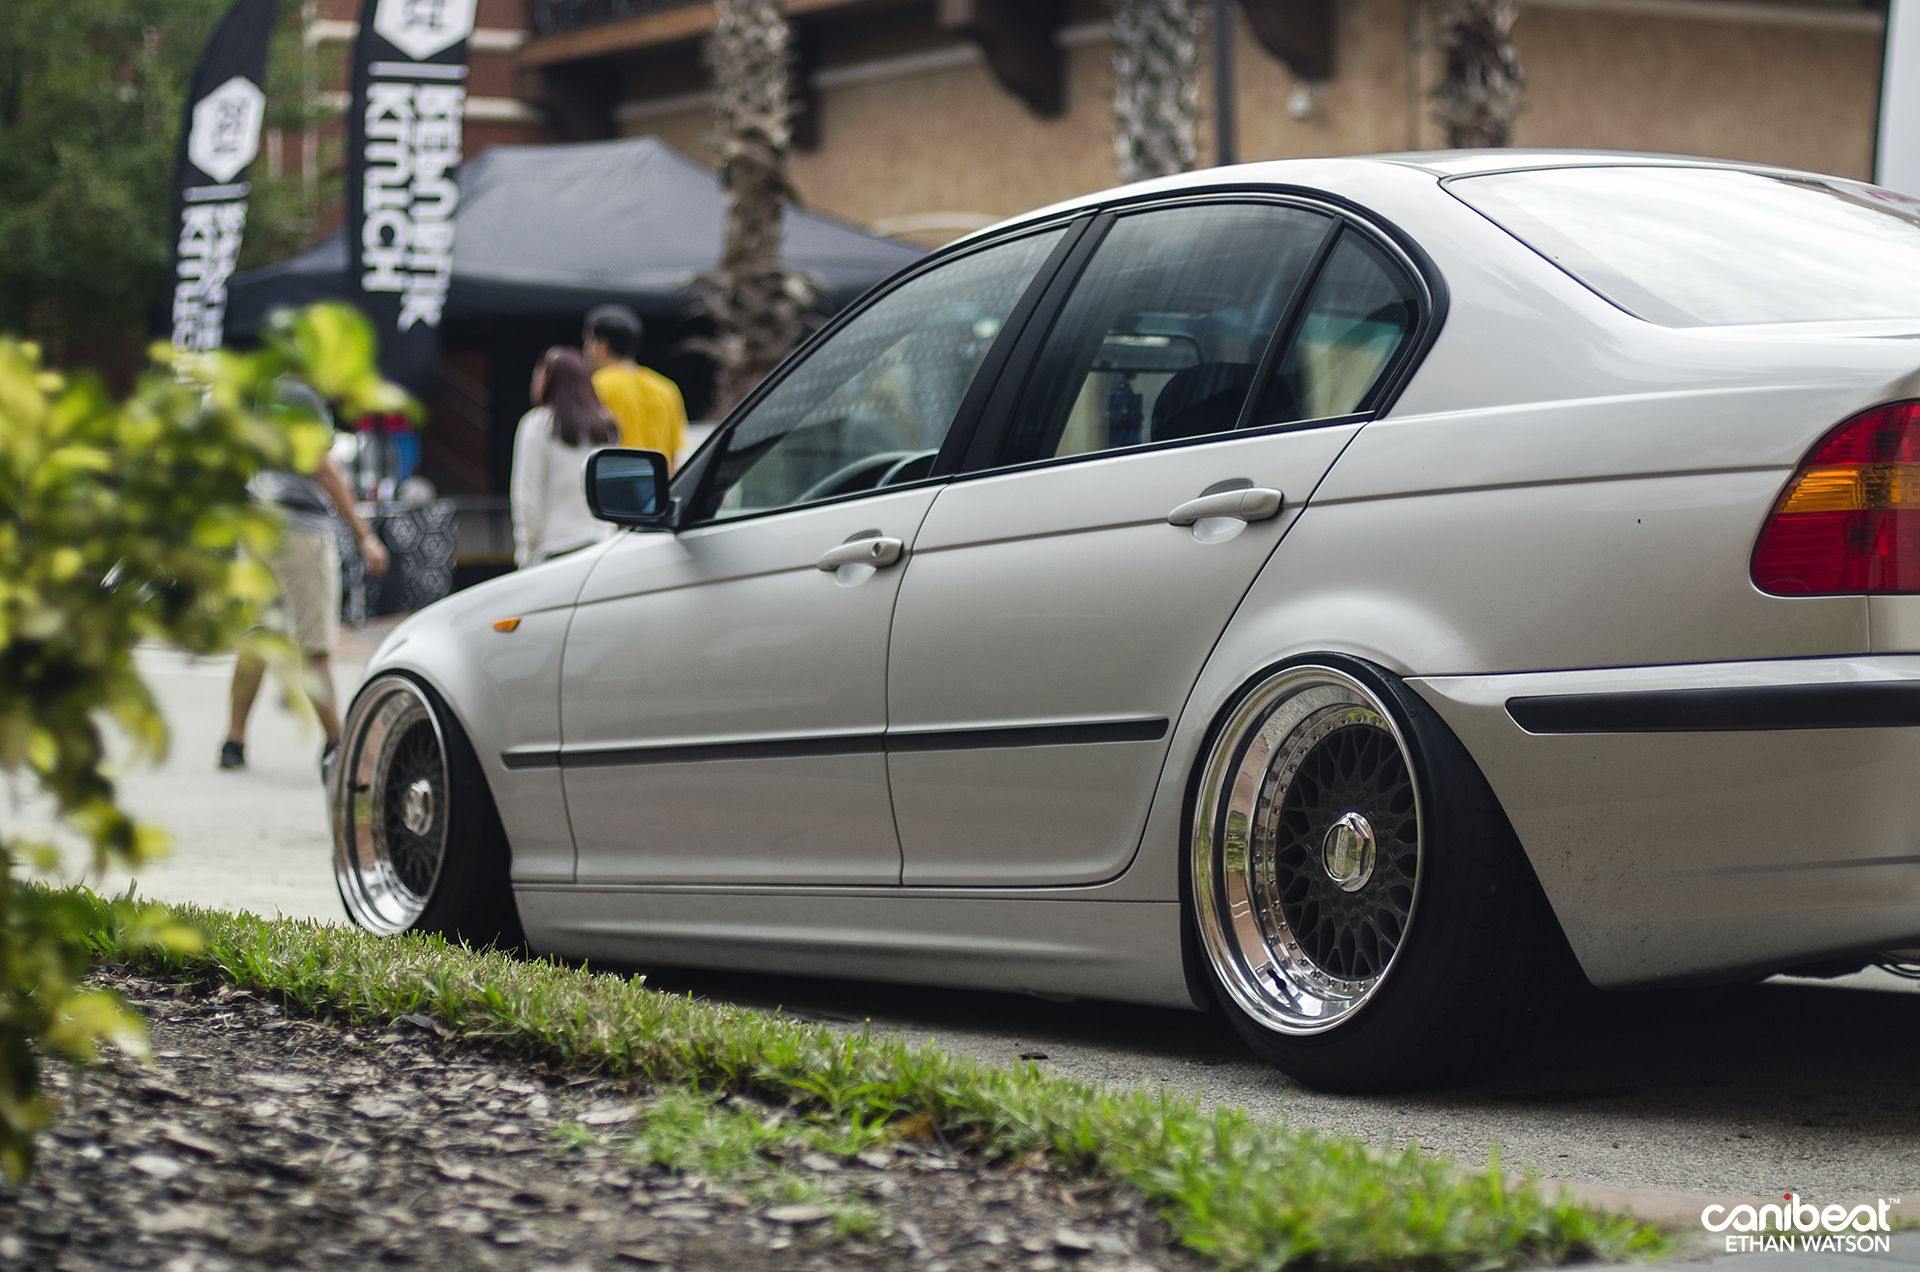 bmw e46 sedan bbs rs - Google Search